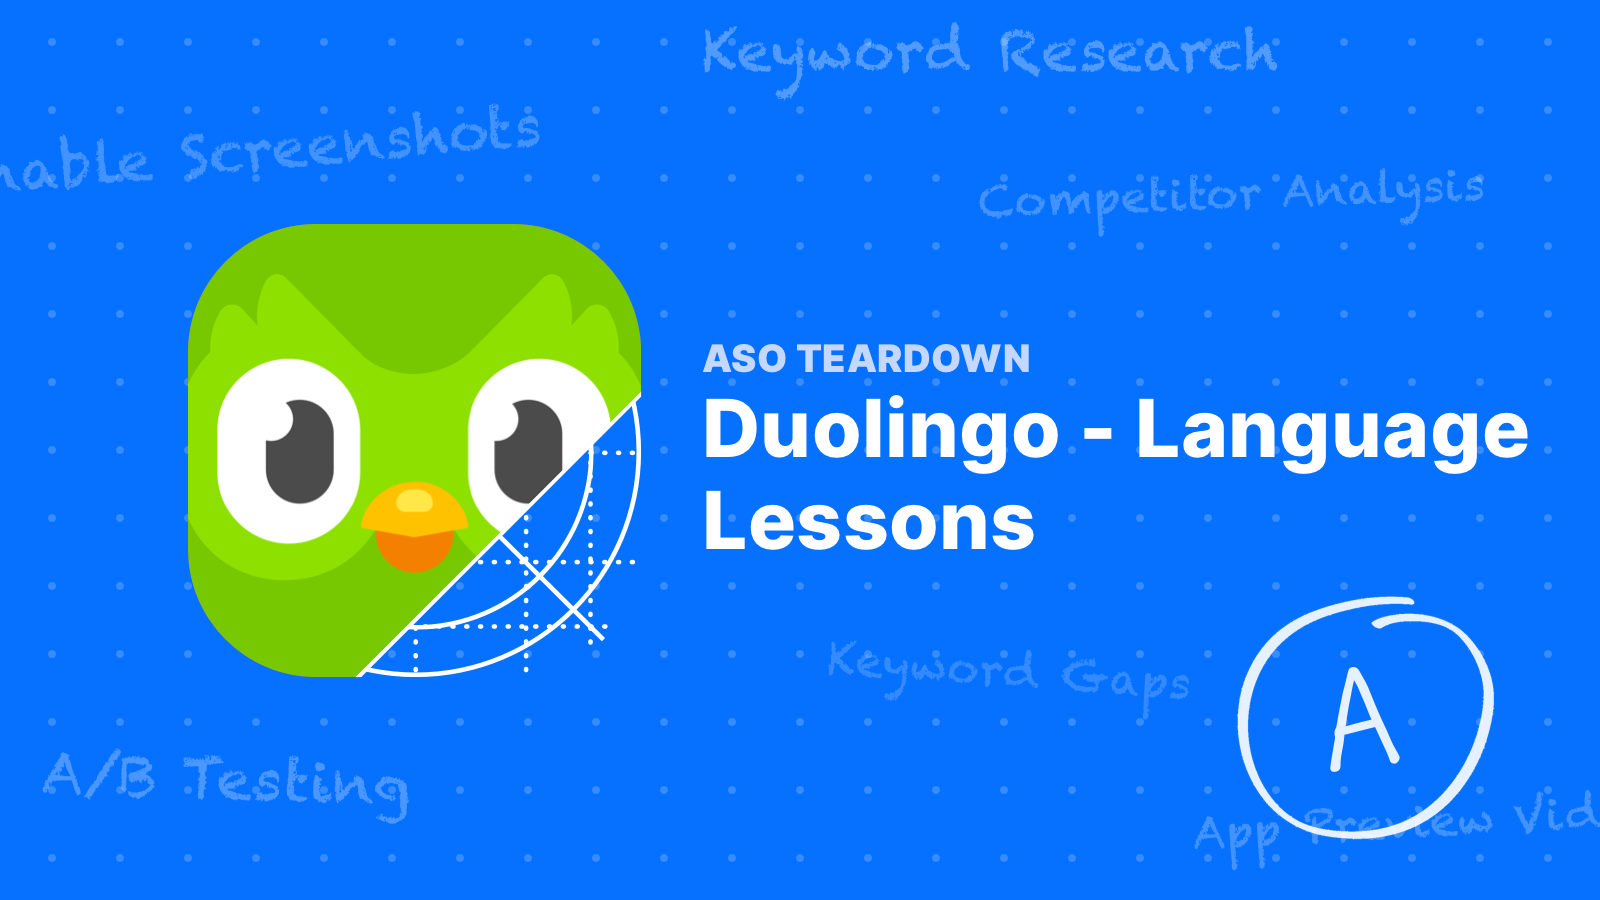 ASO Teardown: Duolingo Commands Every Keyword in its Category